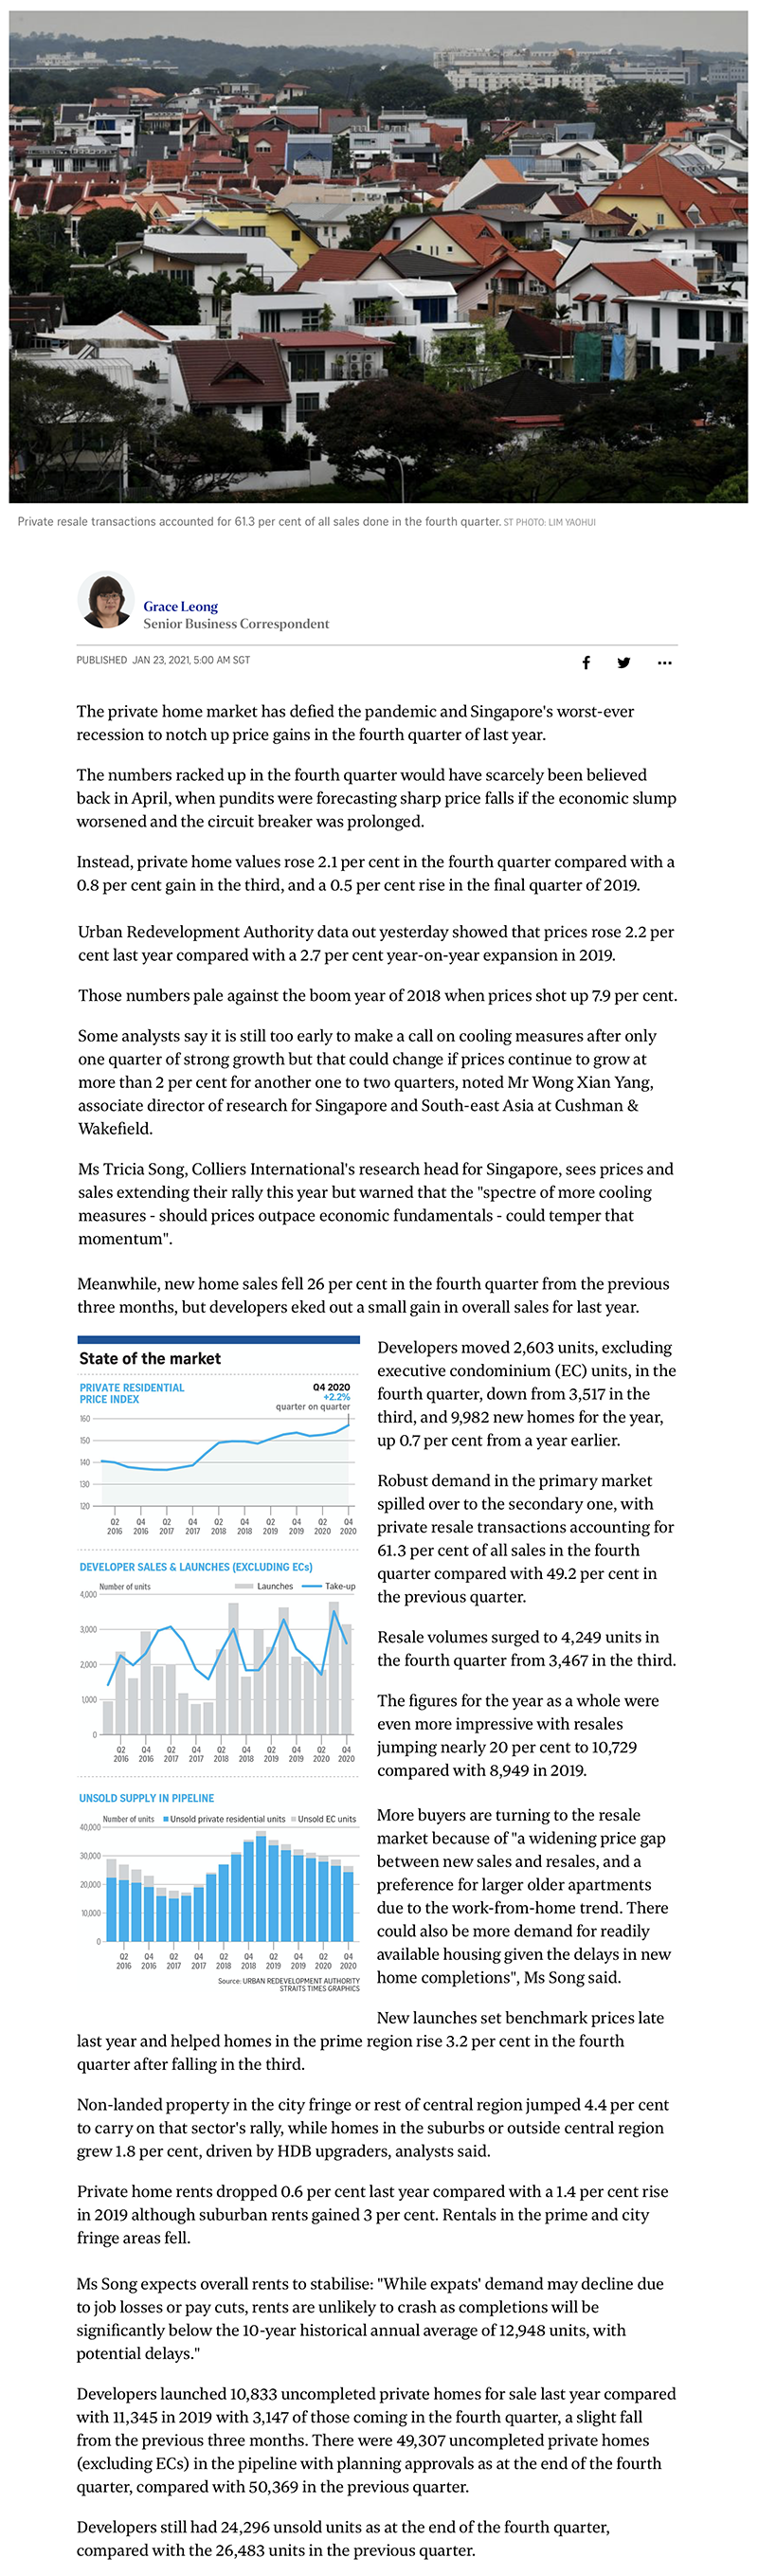 The Woodleigh Residences - Private home sales see robust price gains in fourth quarter